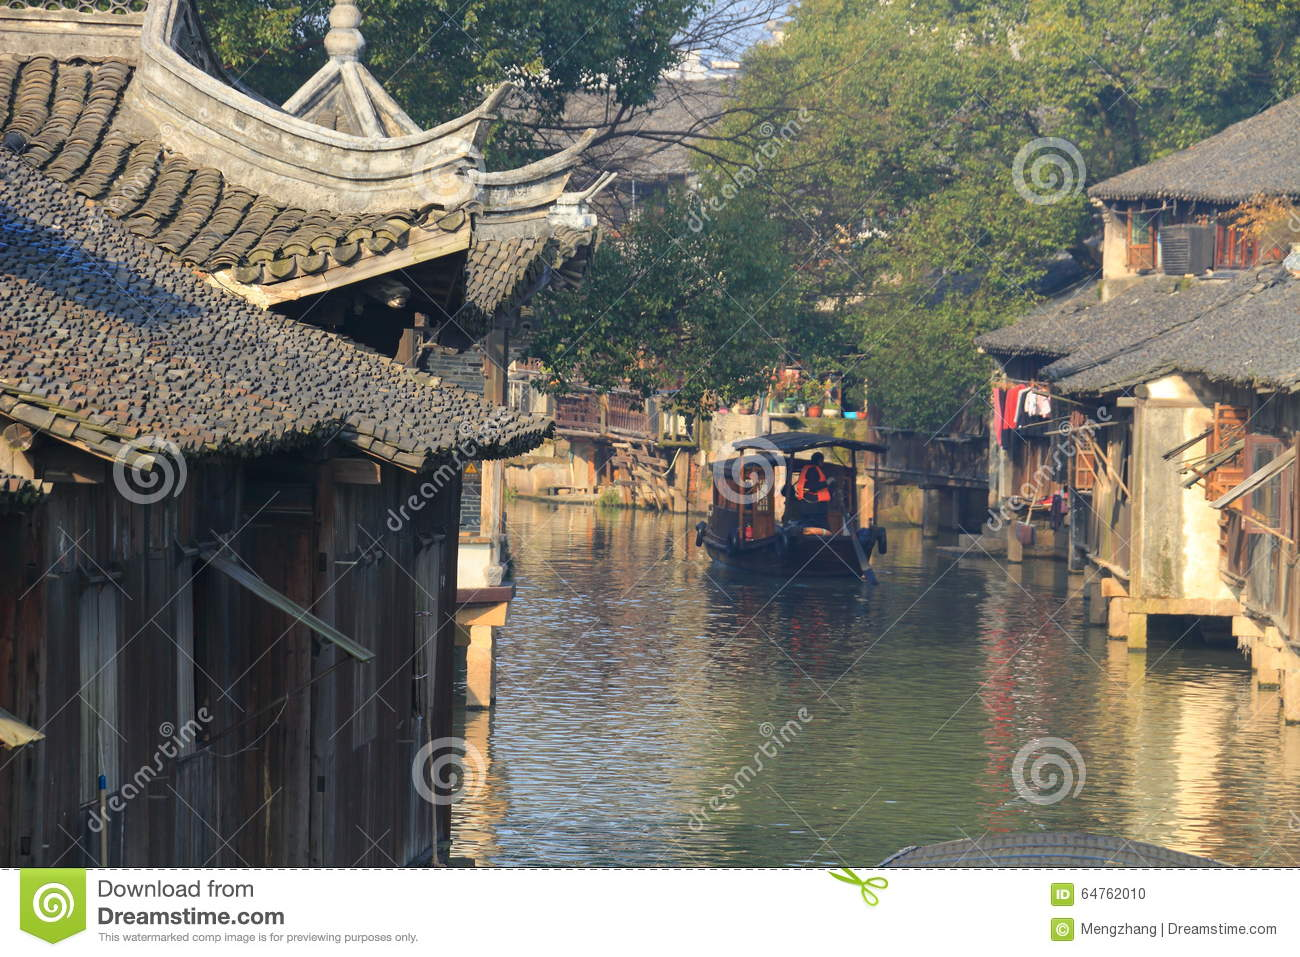 water village guys Nicknamed the 'long hair village', the yao women in this autonomous region of   also found in rice water is inositol, a carbohydrate what can repair damaged  hair as well as  thanks you guys it's really great to know the source of long  hair.